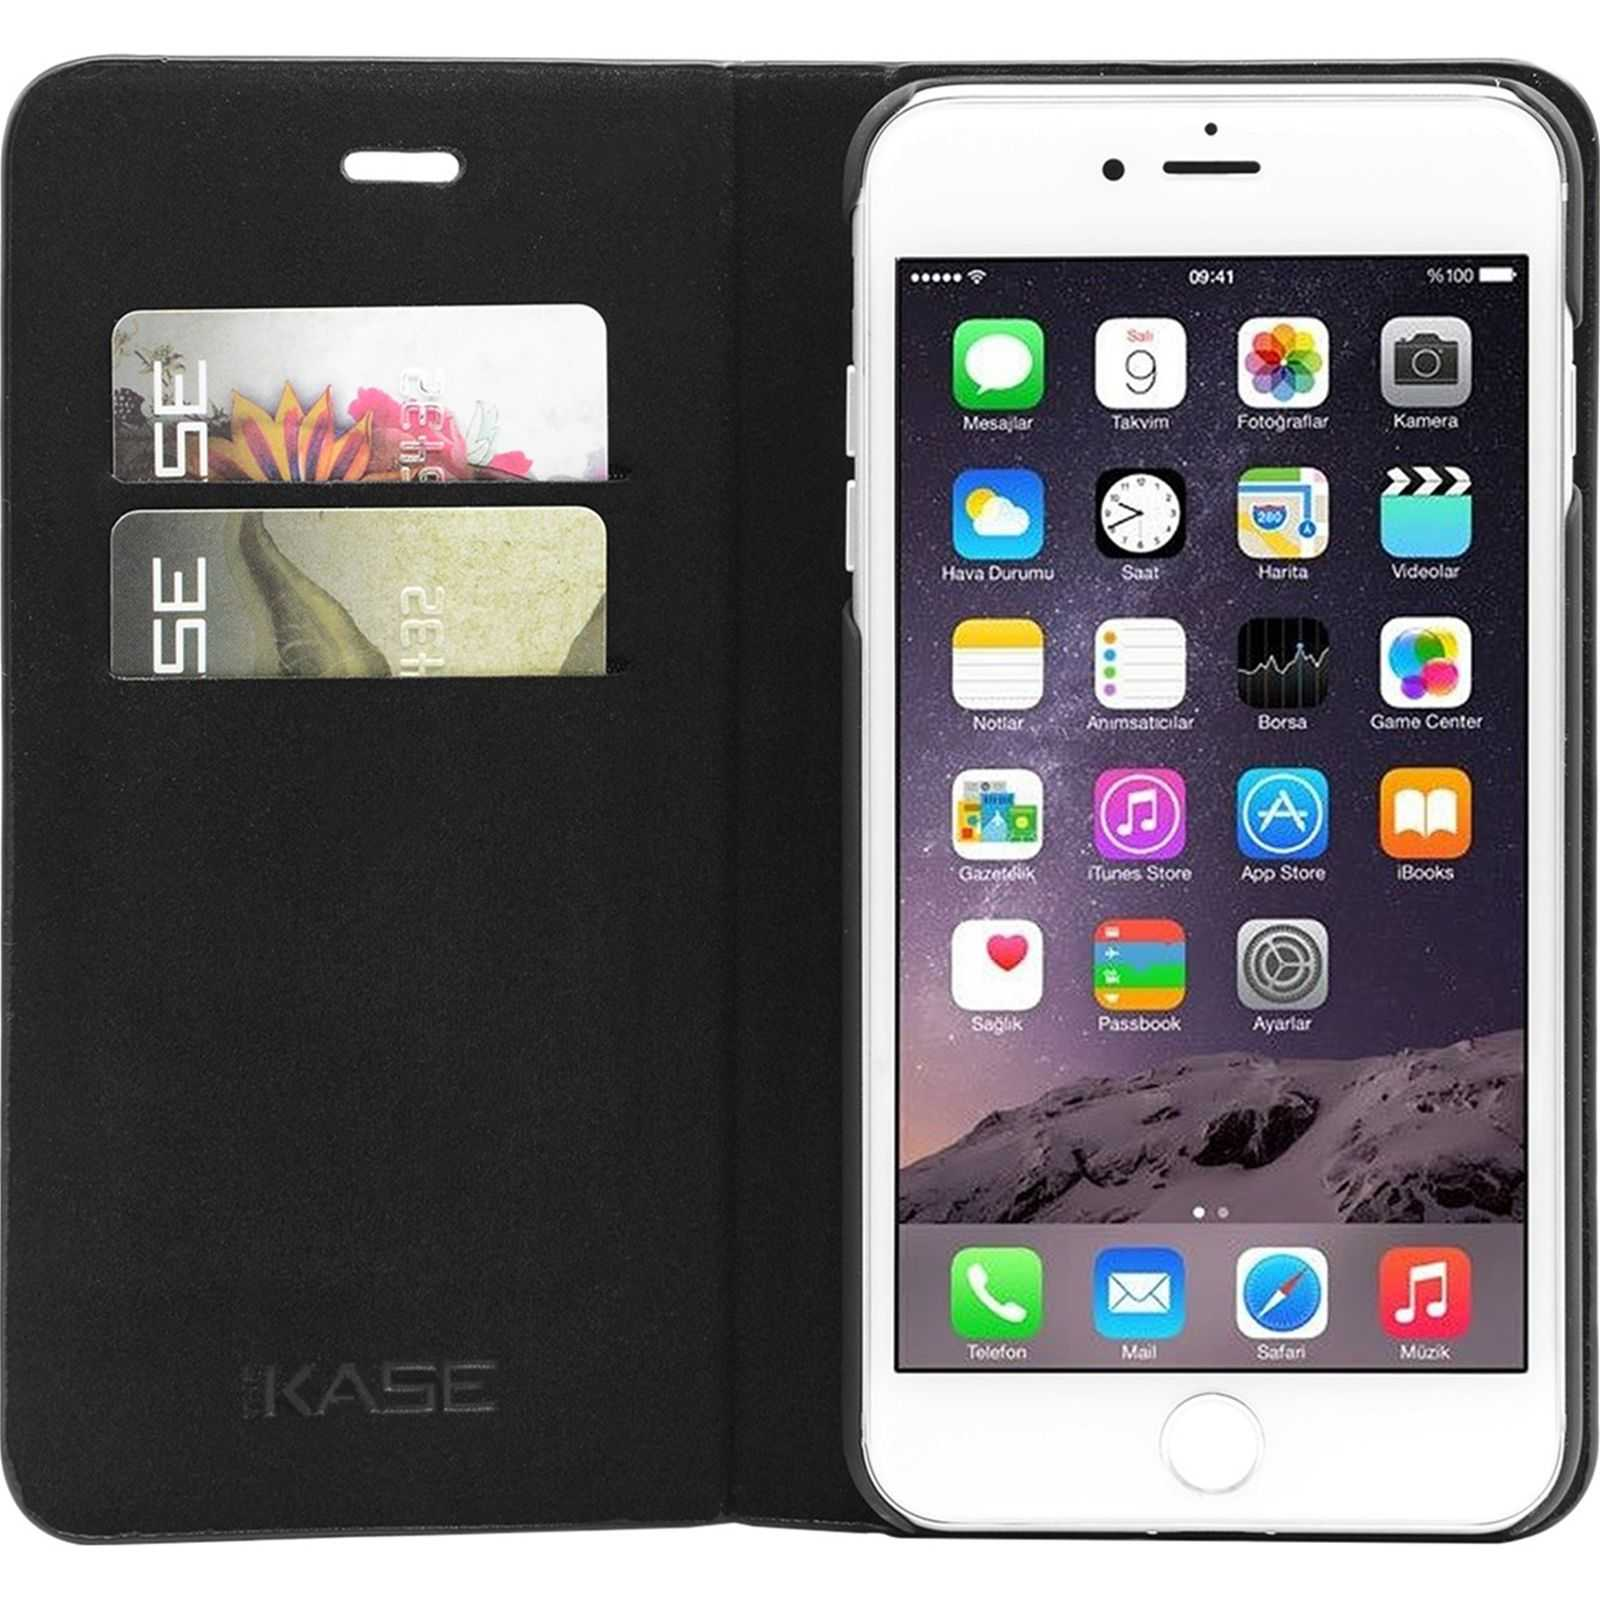 The kase housse pour iphone 7 noir brandalley for Housse pour iphone 7